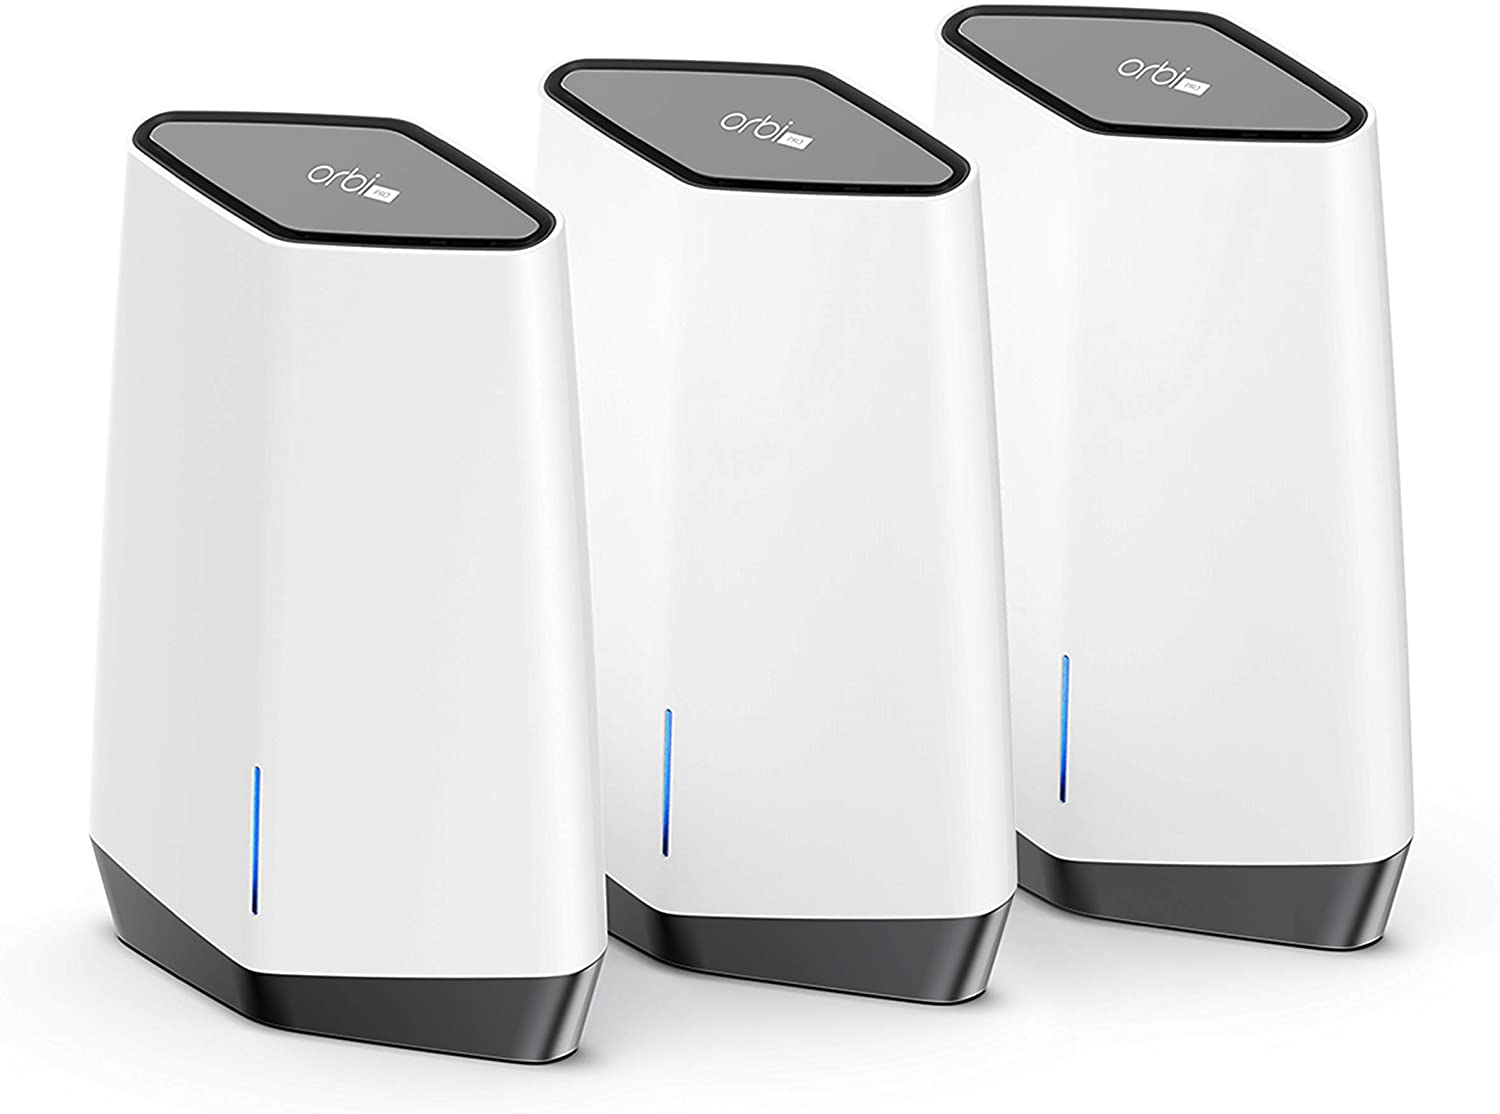 NETGEAR Orbi Pro WiFi 6 Tri-band Mesh System for Business or Home (SXK80B3) - Router with 2 Satellite Extenders | 4 SSIDs, VLAN, QoS | Coverage up to 9,000 sq. ft., 80 Devices | AX6000 (Up to 6Gbps)